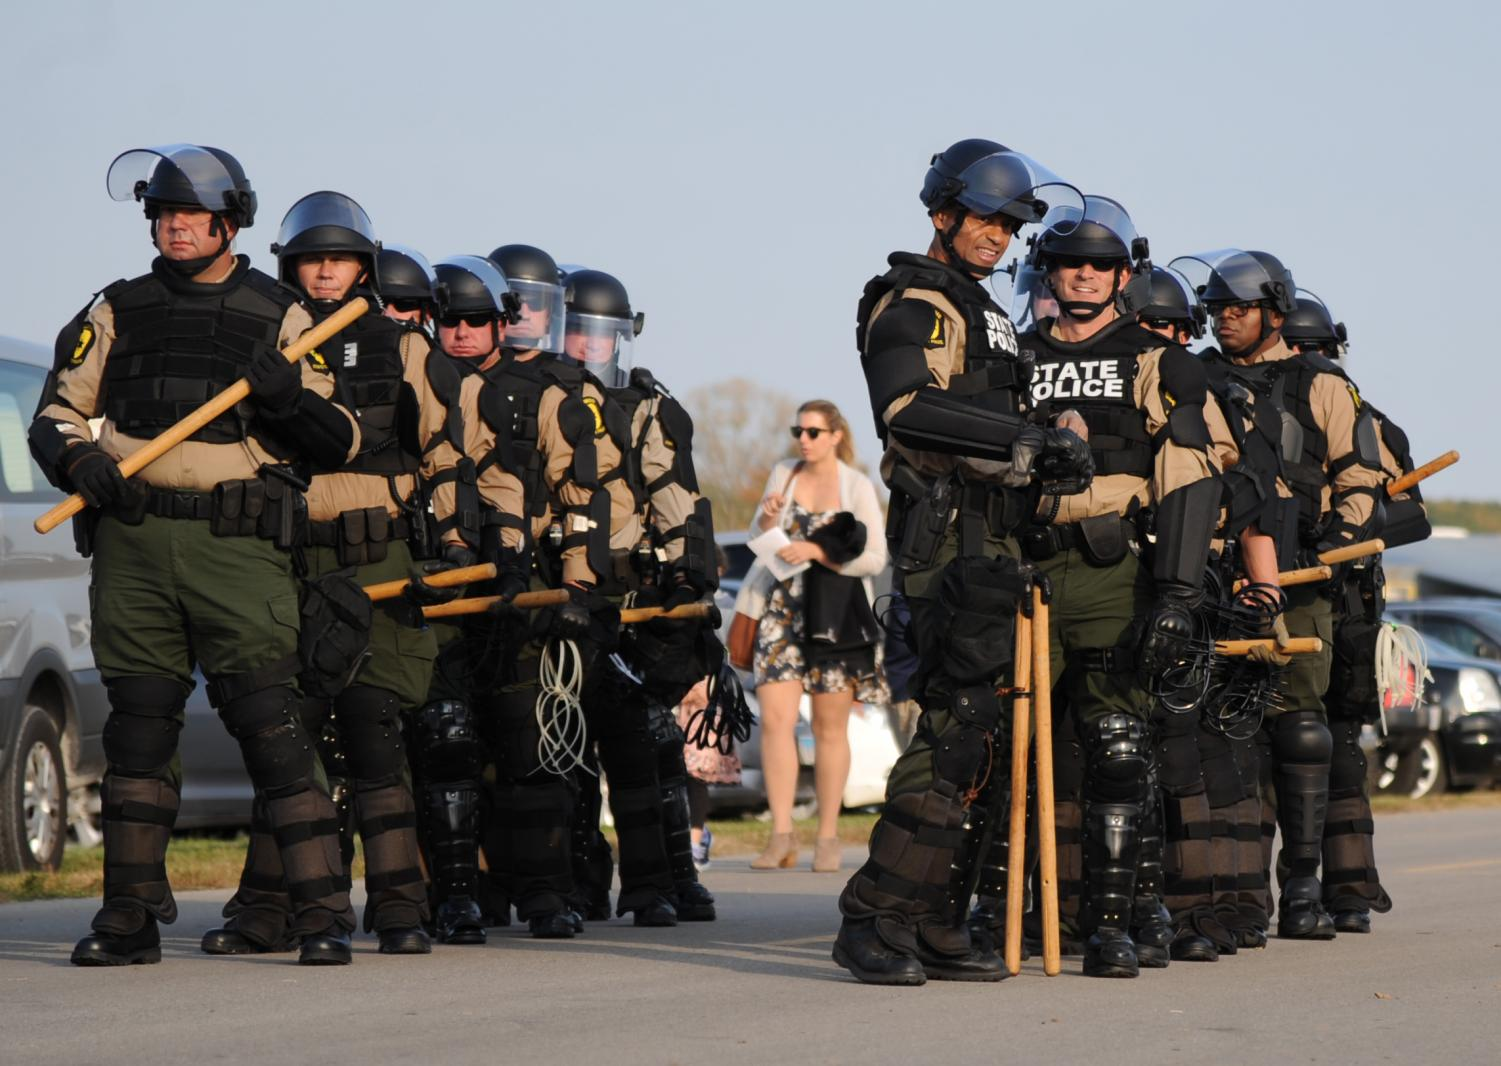 State+police+in+tactical+gear+line+up+in+preparation+for+the+approaching+protesters%2C+during+the+MAGA+Rally%2C+Saturday%2C+Oct.+27%2C+2018%2C+at+the+Southern+Illinois+Airport+in+Murphysboro.+%28Mary+Barnhart+%7C+%40MaryBarnhartDE%29